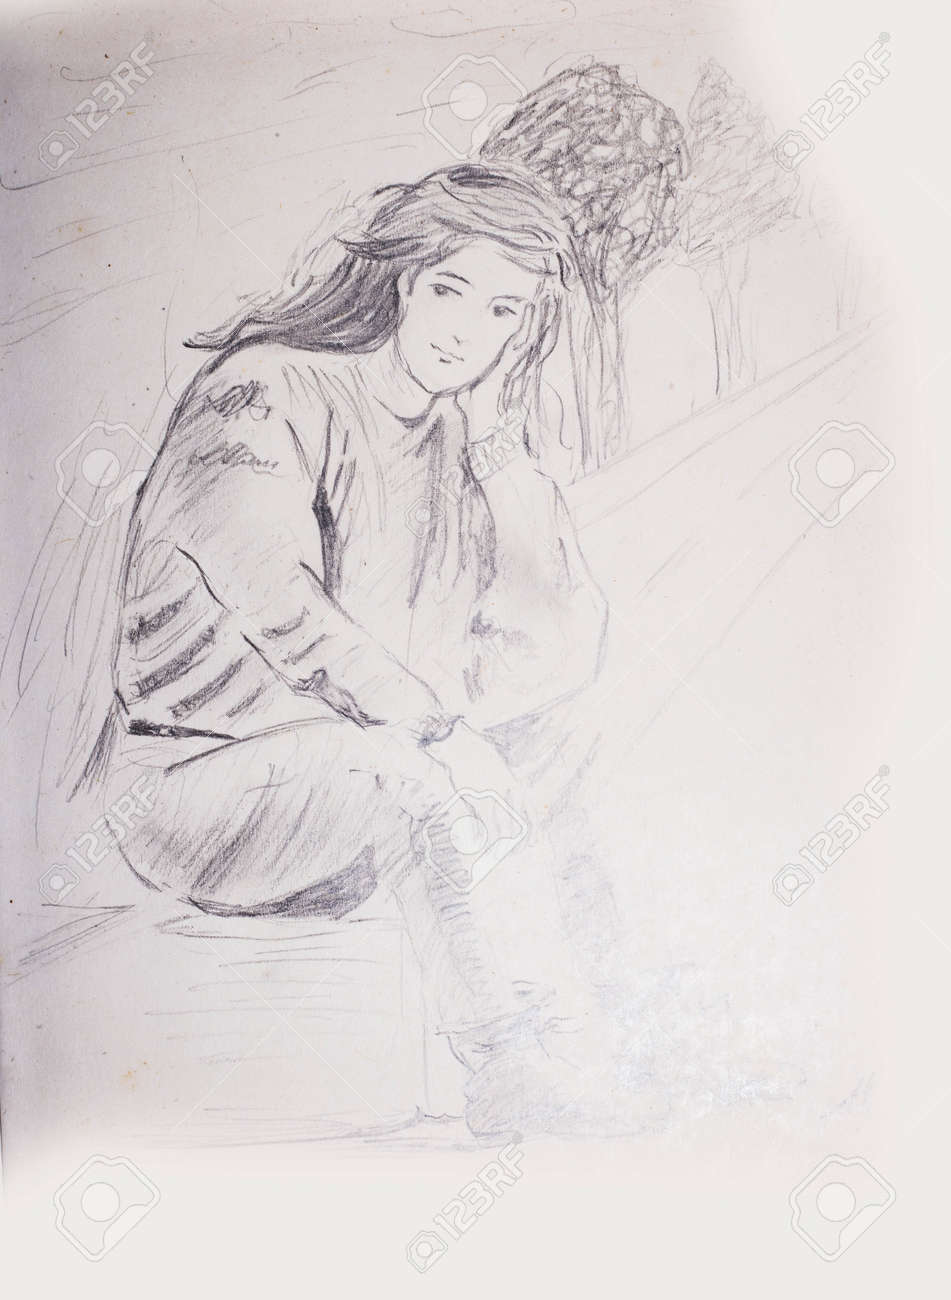 Pencil sketch of a young girl sitting on a foot path and waiting trees in